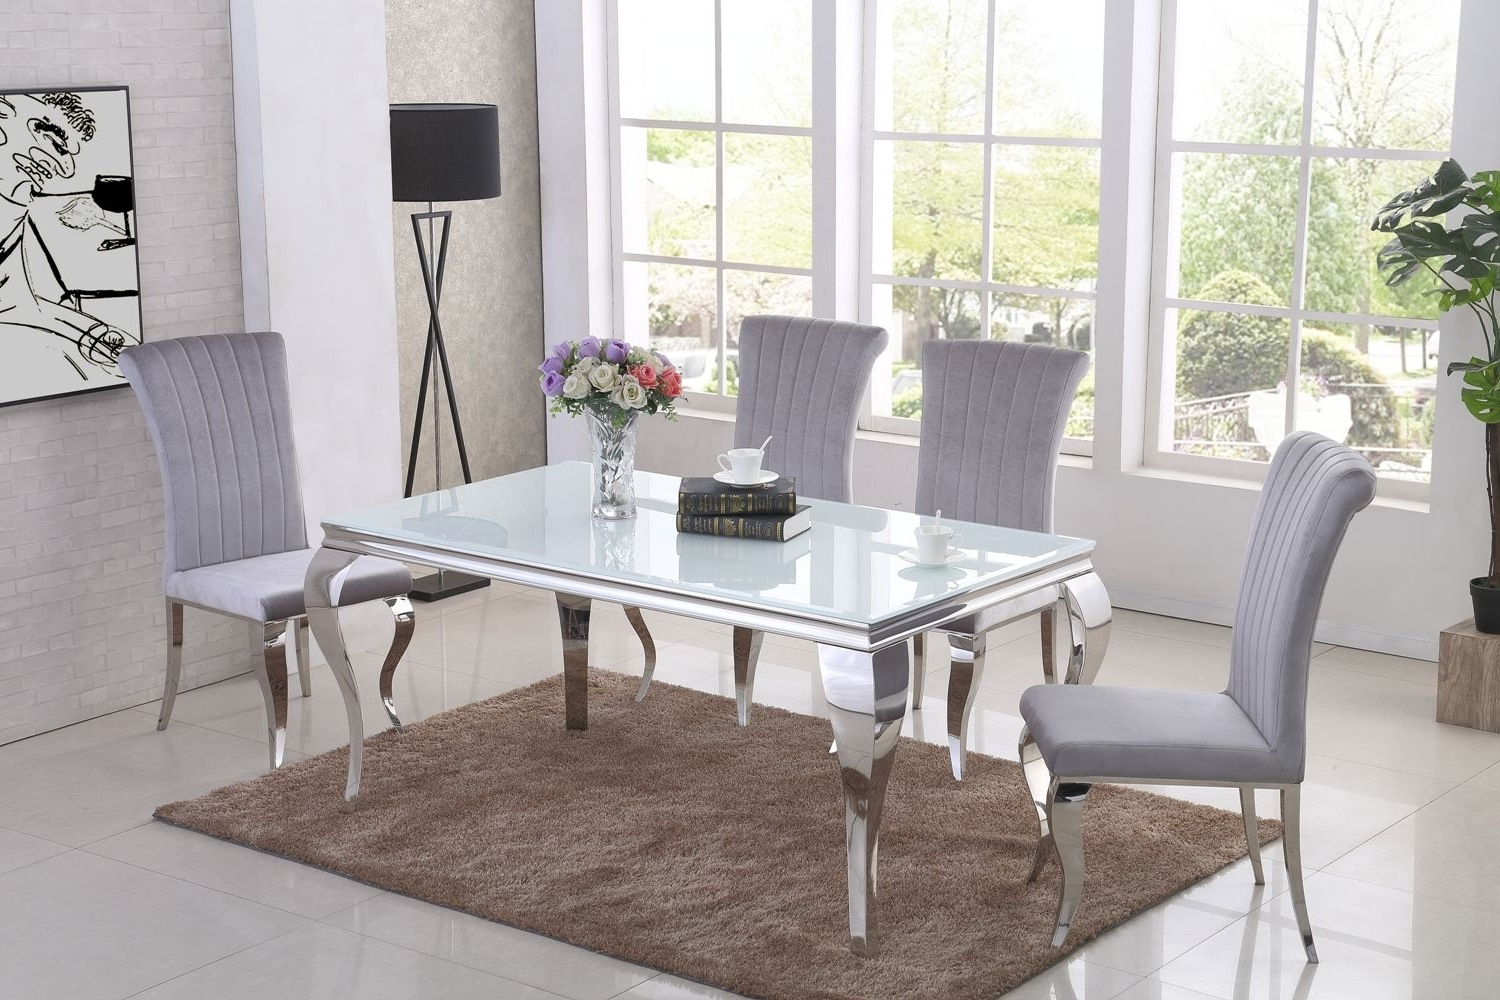 2018 Ga Liyana White Dining Table & 4 6 Grey Chairs Within White Dining Tables (View 17 of 25)